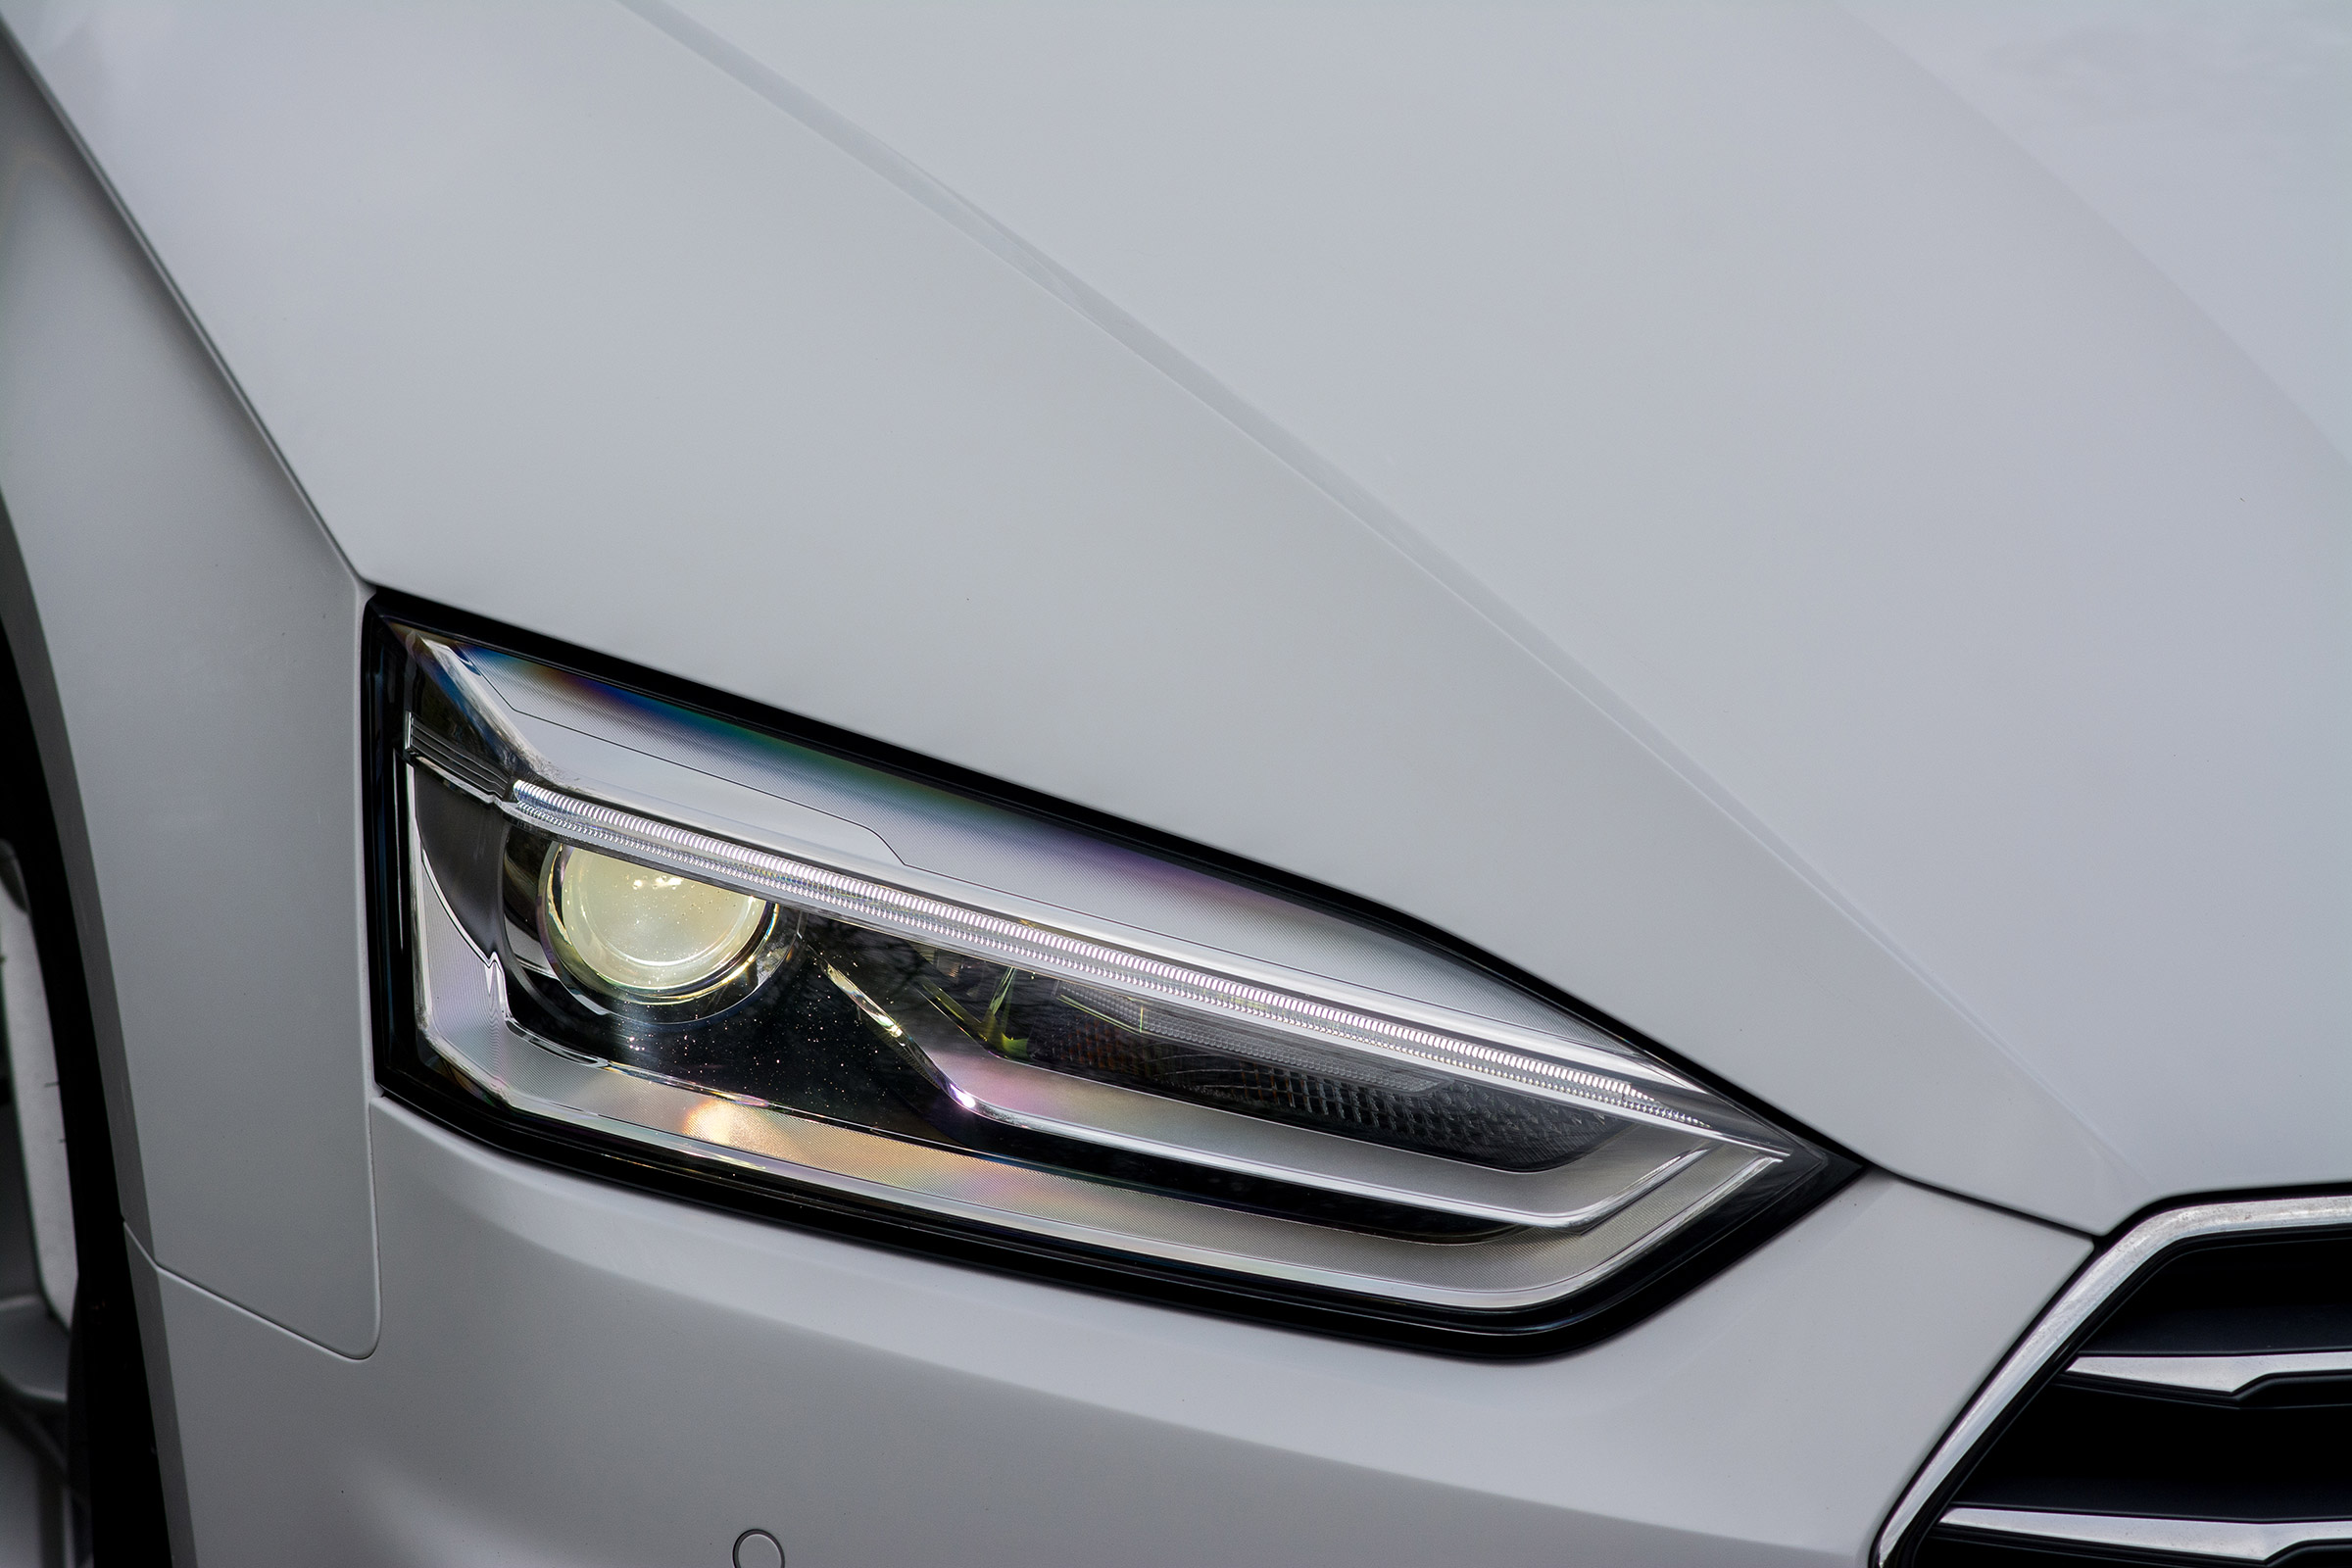 2017 Audi A5 Coupe Exterior View Headlight (Photo 20 of 21)